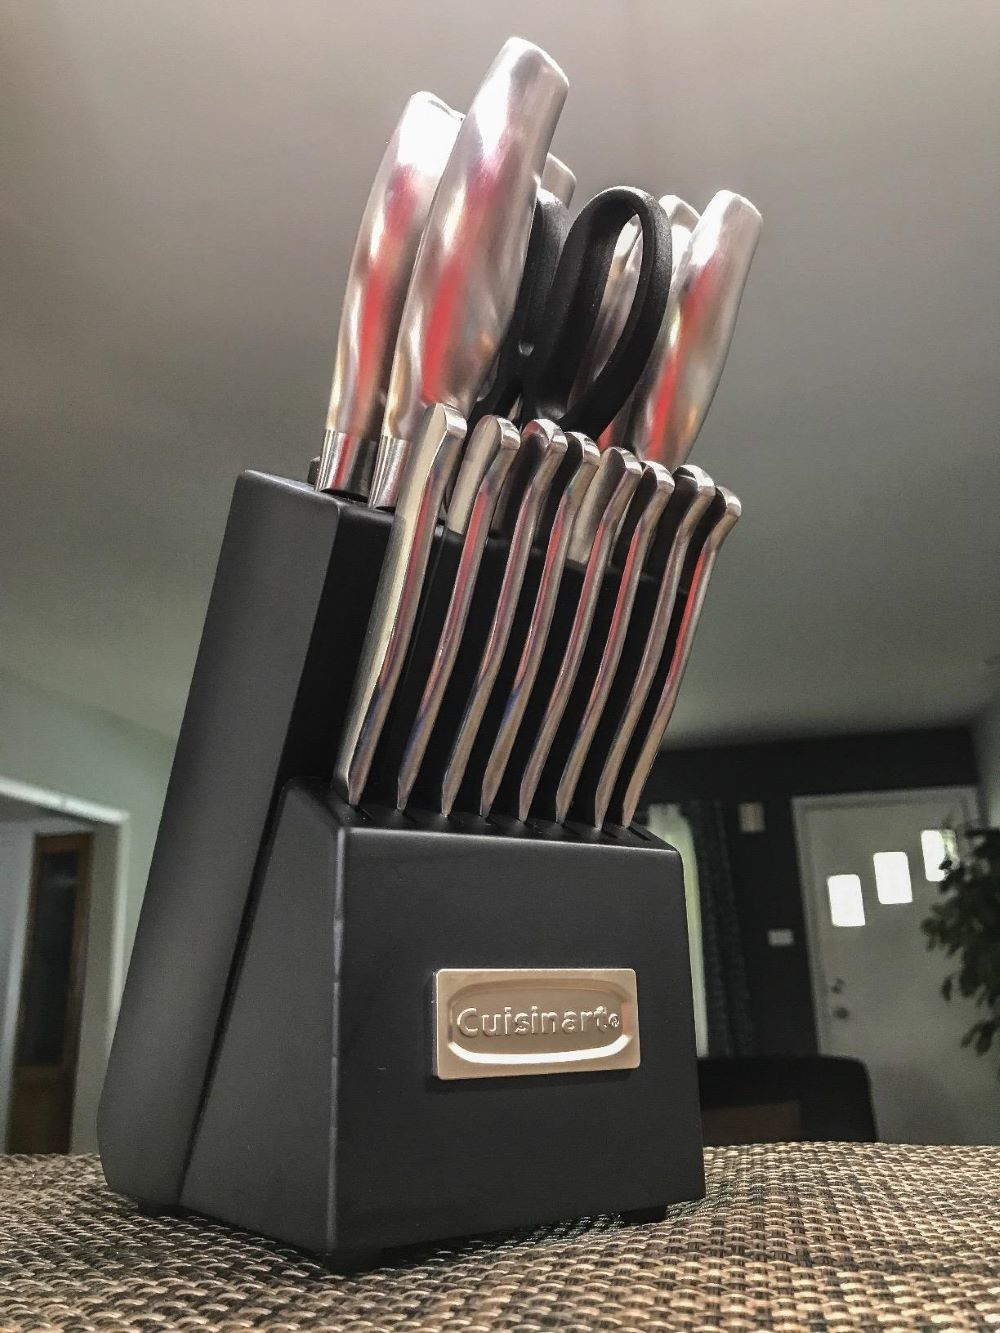 cuisinart knife block with knives in it